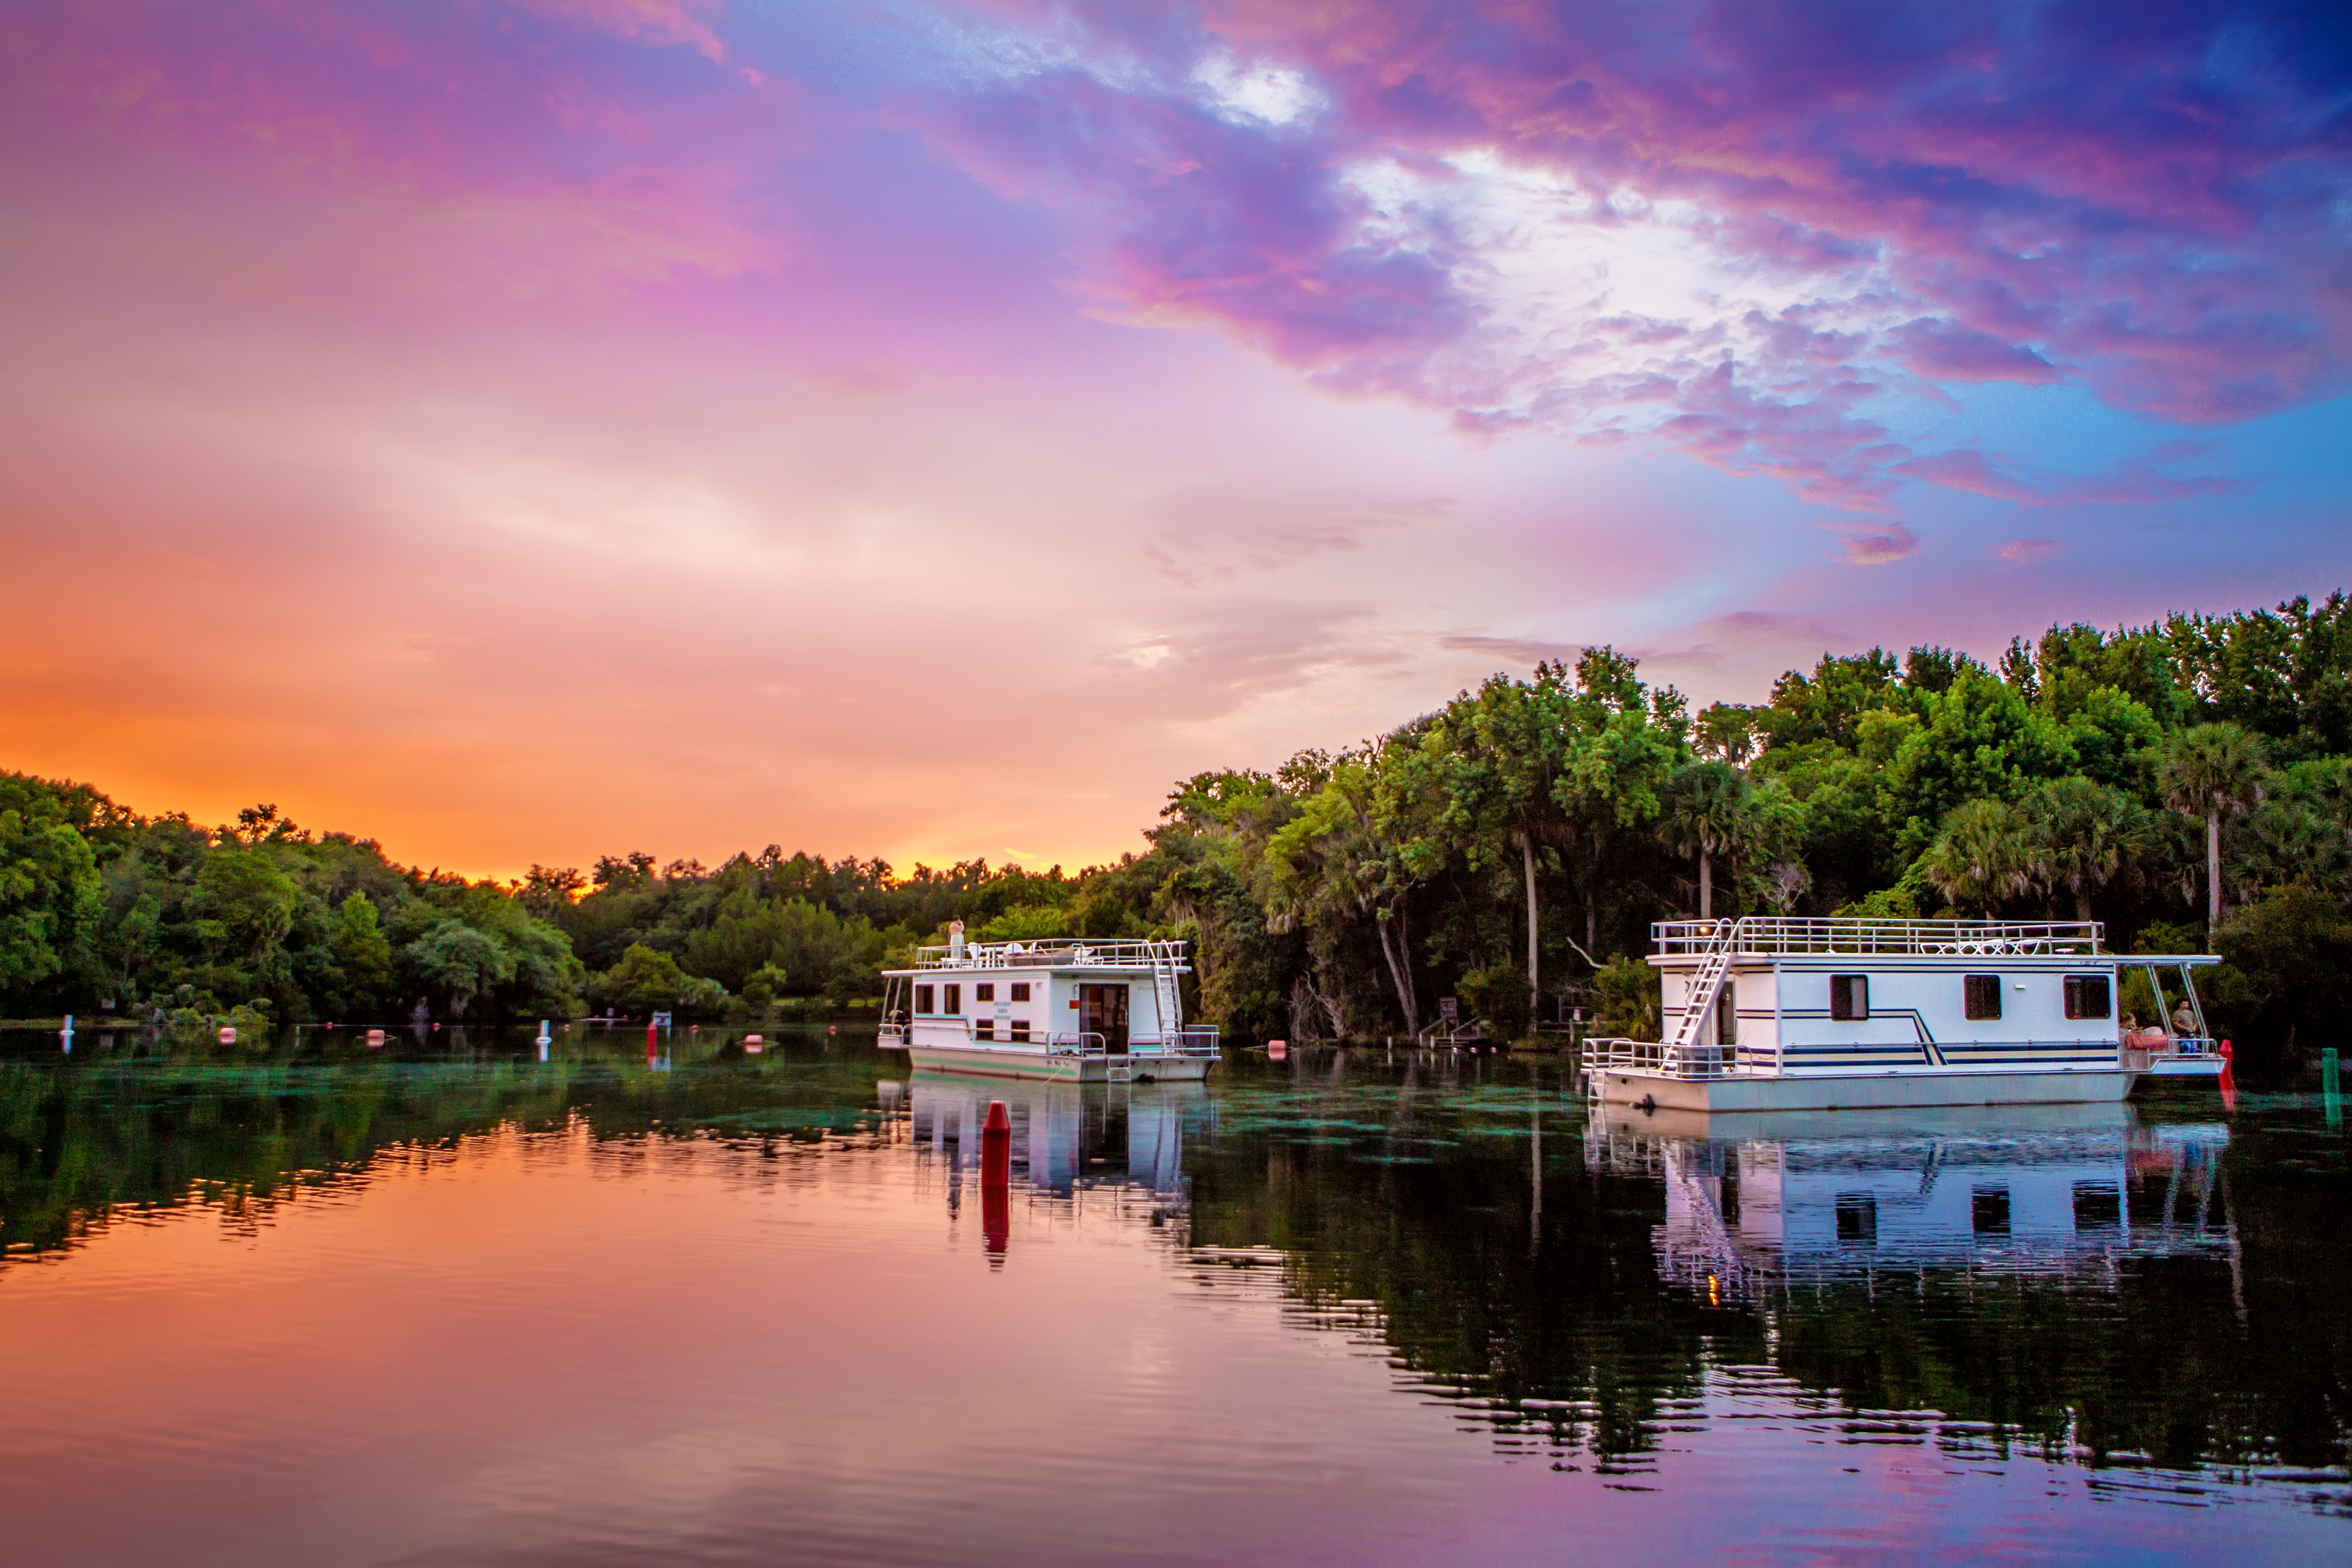 Houseboating on the St. Johns River